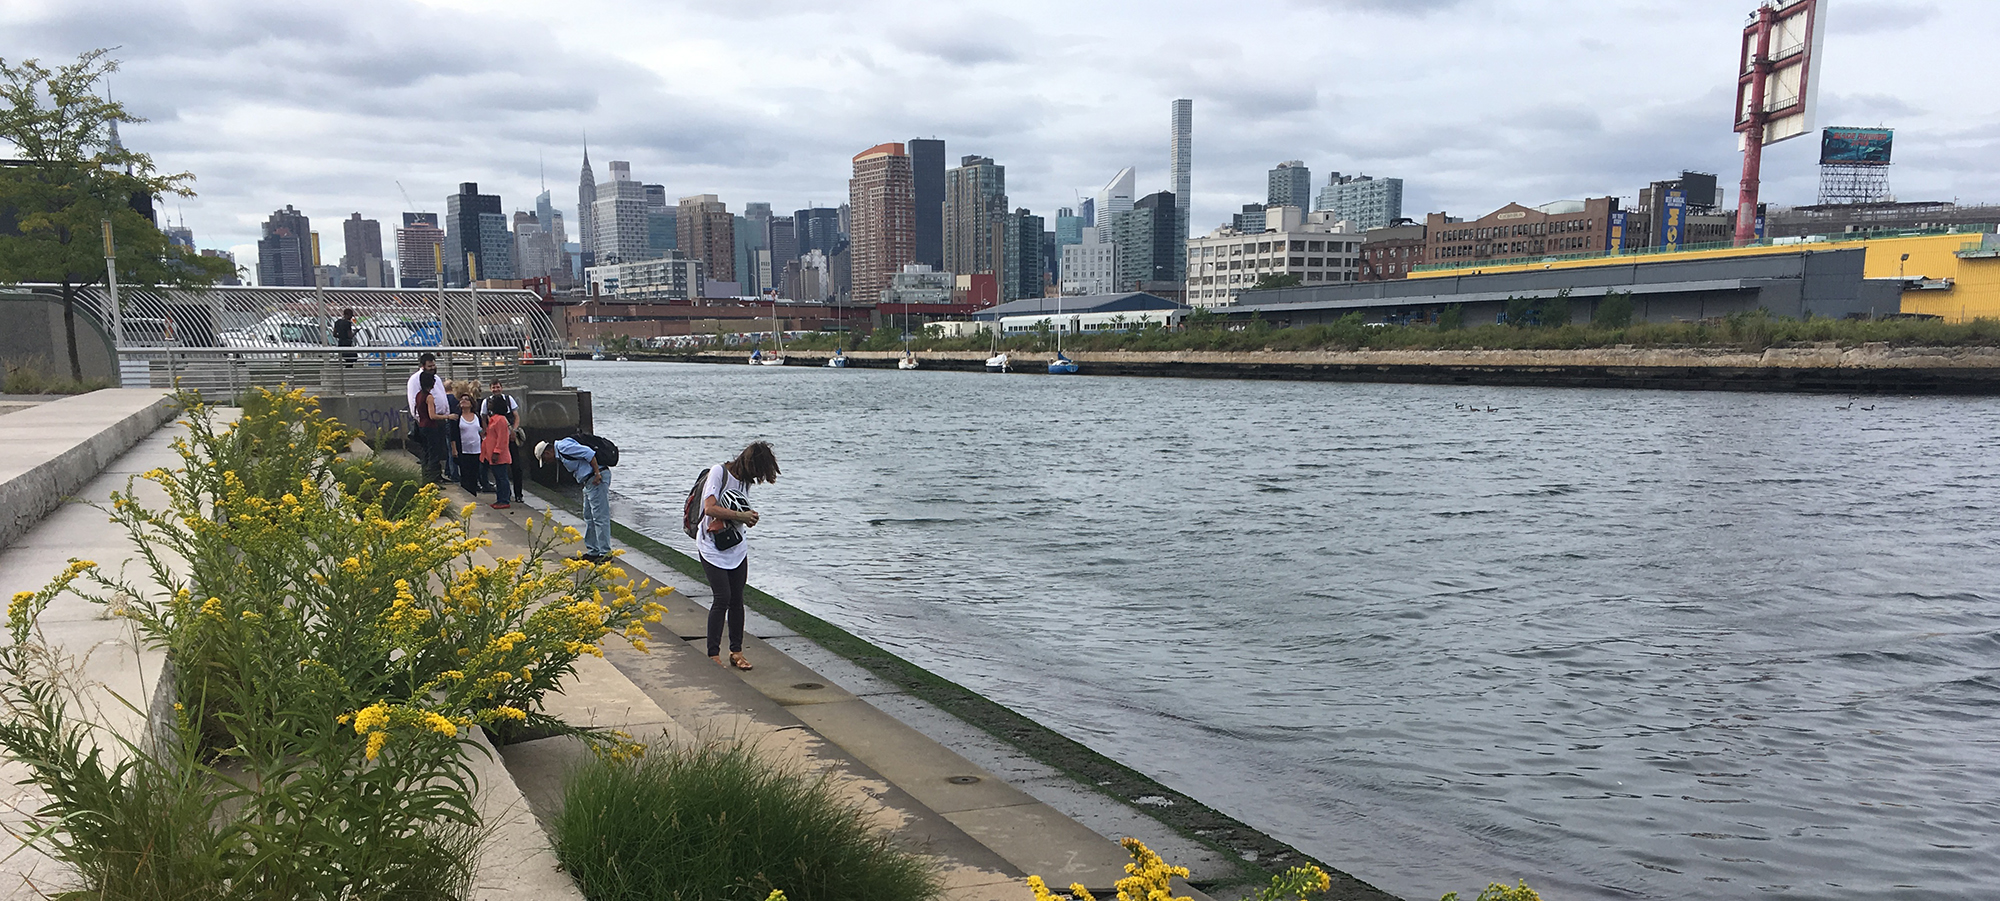 Greenpoint returns to its 'greener' days | Rethink